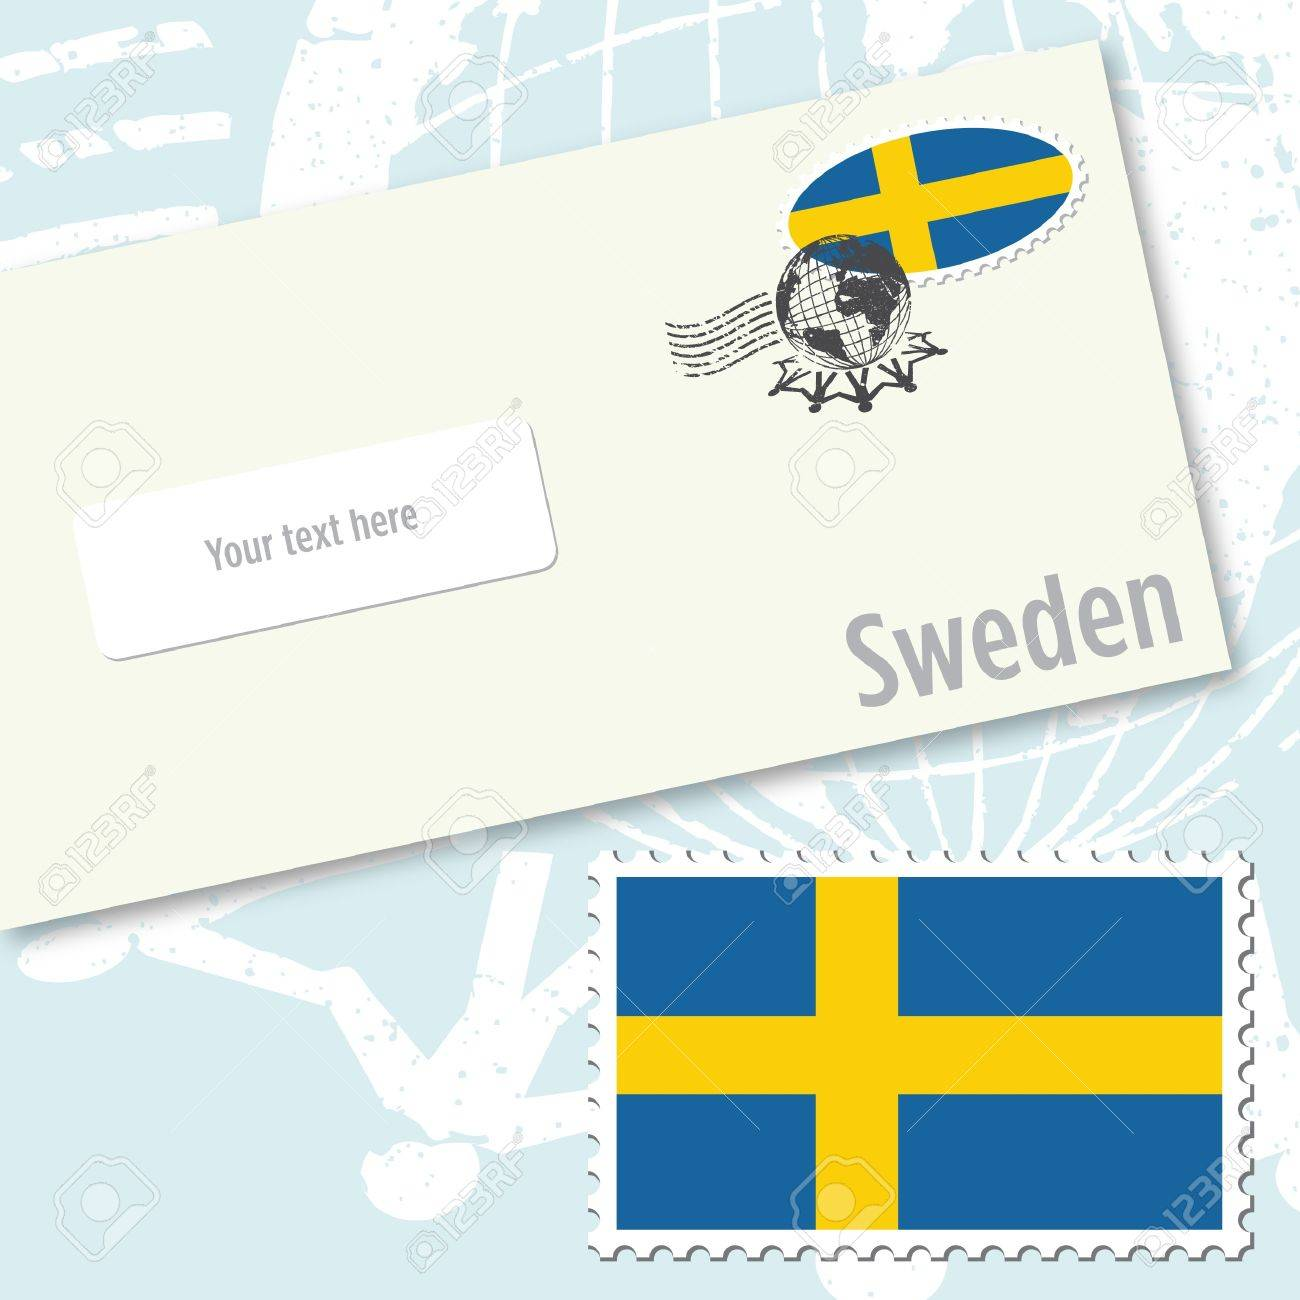 Sweden envelope design with country flag stamp and postal stamping Stock Vector - 9082282